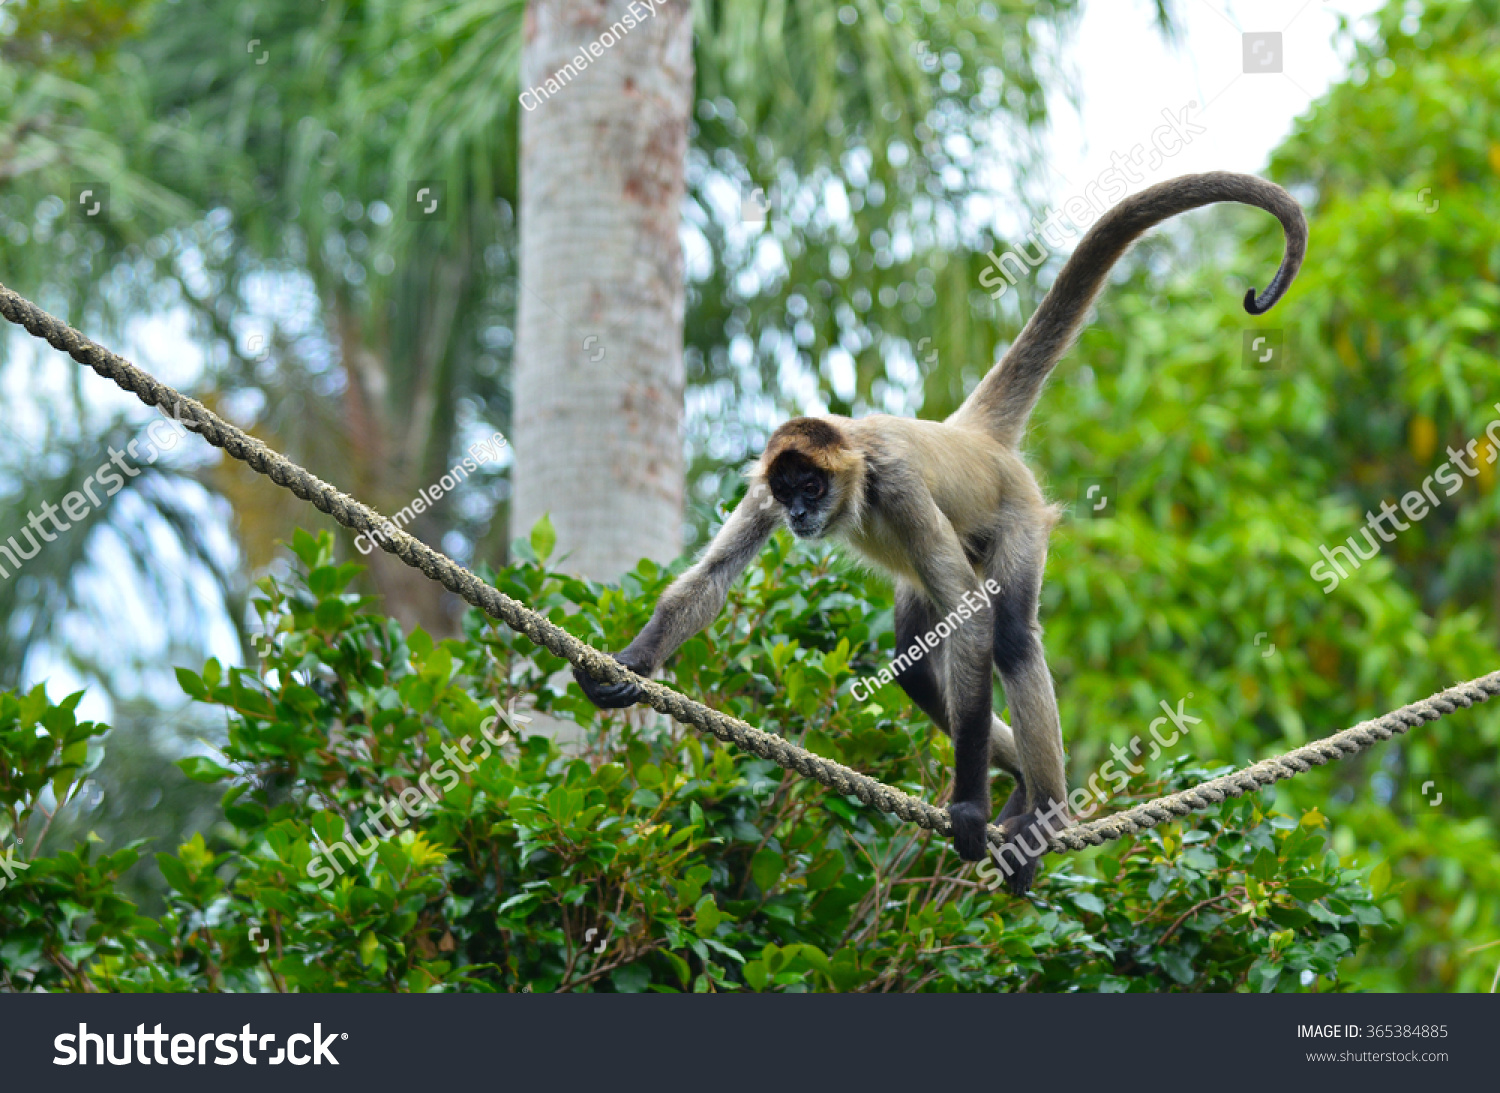 ateles geoffroyi. spider monkey (ateles geoffroyi) play on a rope. it live in tropical forests ateles geoffroyi